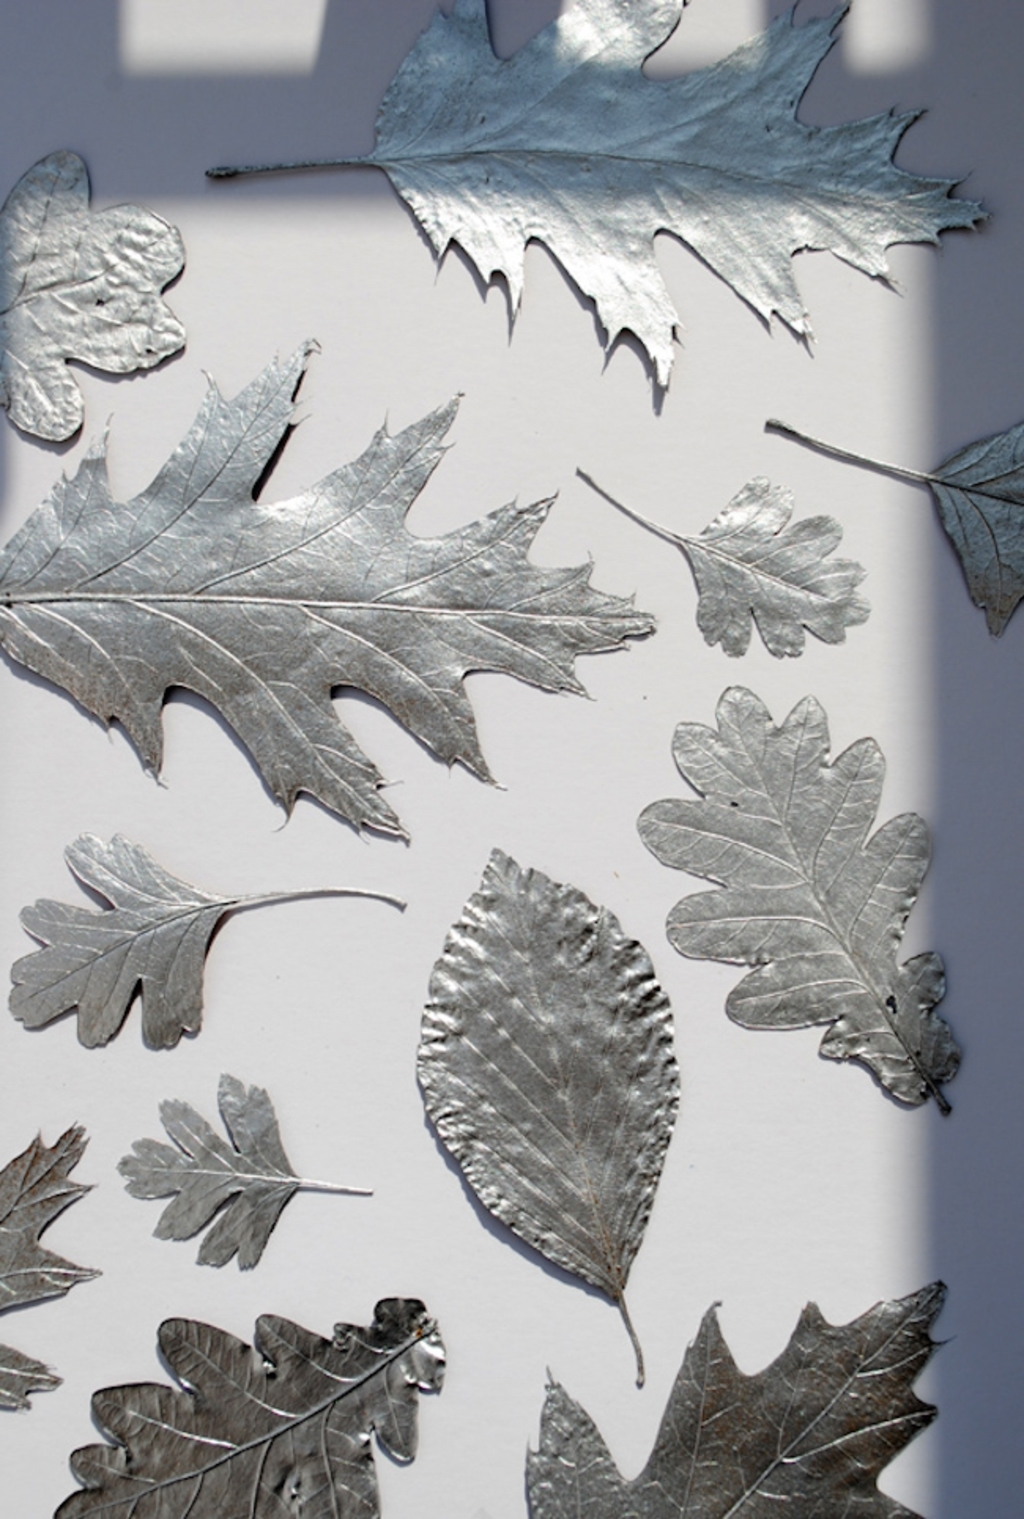 Diy Projects: Leaf Relief Craft To Use As Wall Art – 8 Creative Intended For Latest Seasonal Wall Art (View 2 of 15)